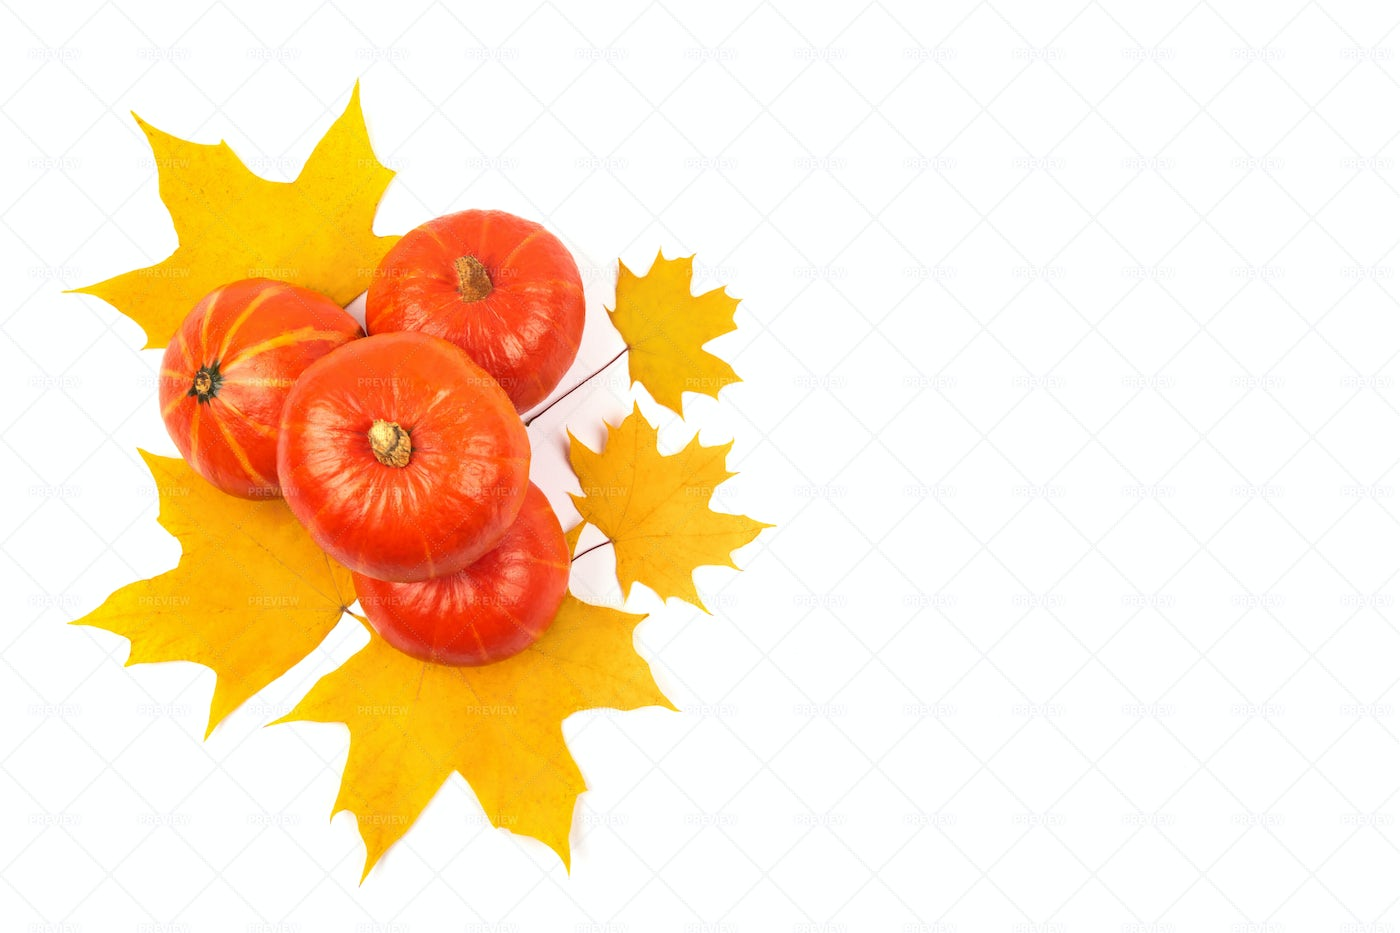 Pumpkin And Yellow Leaves: Stock Photos